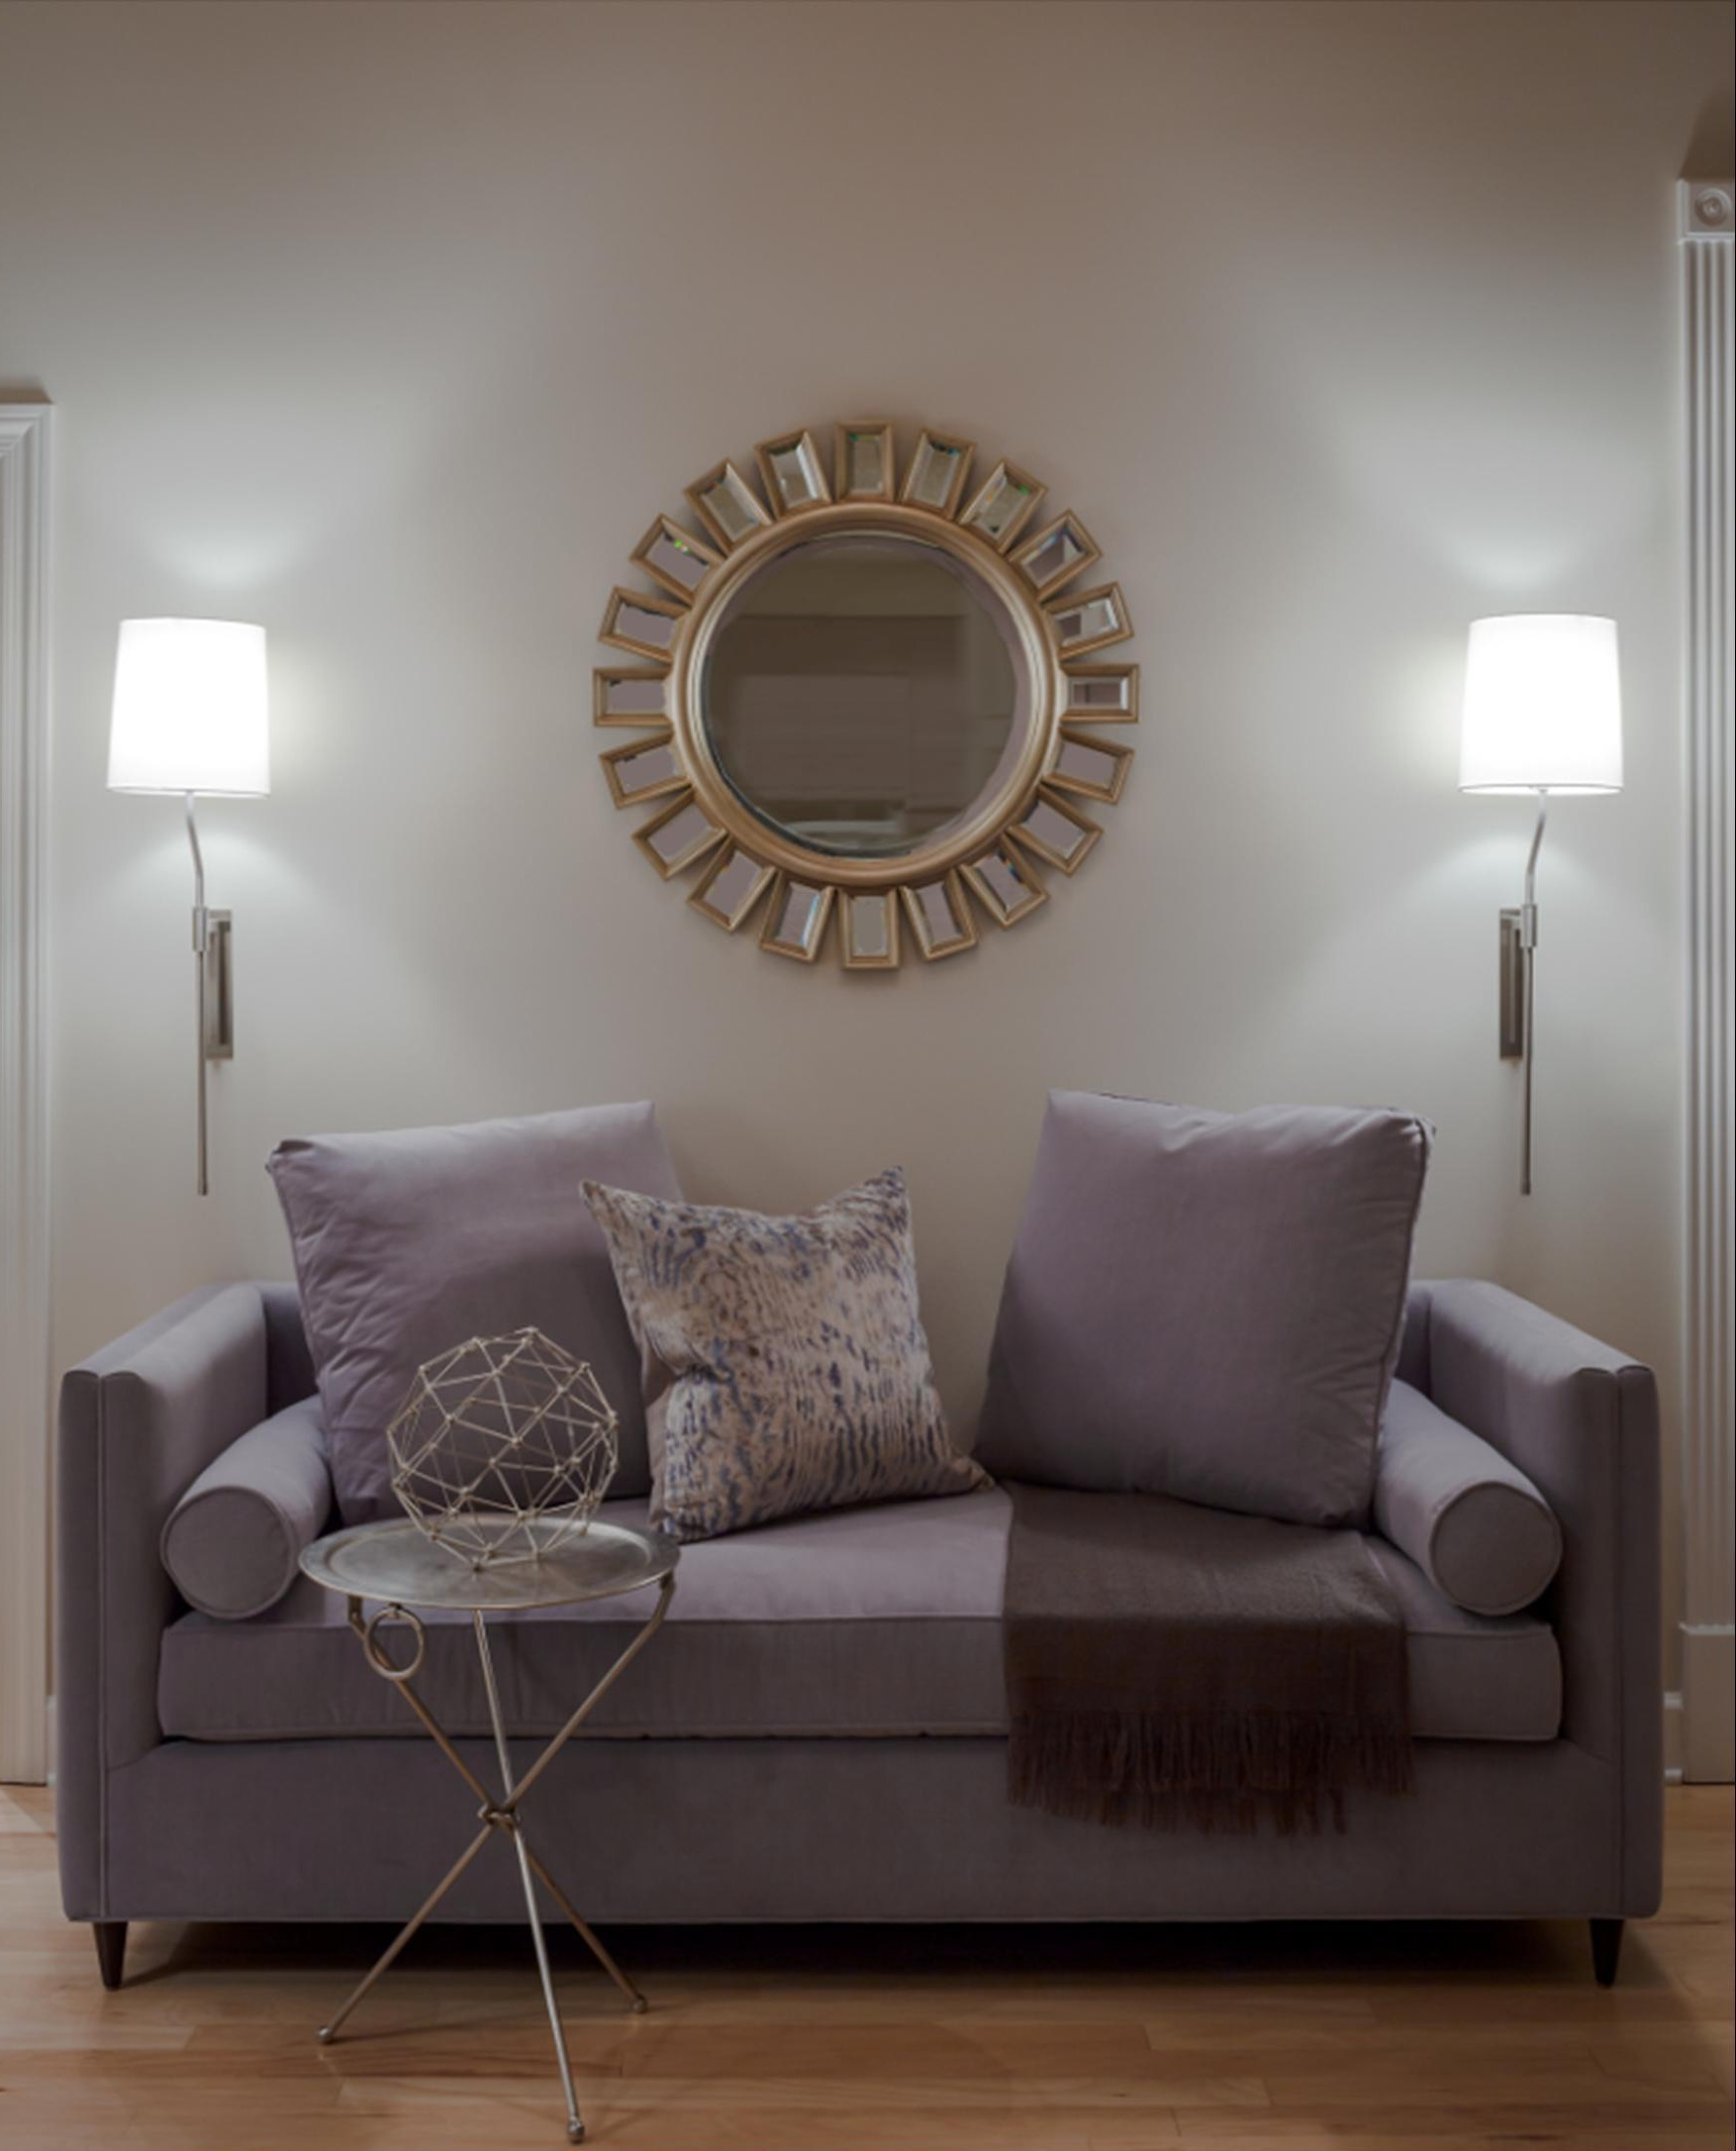 Unique Small Metal Table, Art Deco Mirror And Purple Sofa For Trendy Living Room (Image 23 of 25)